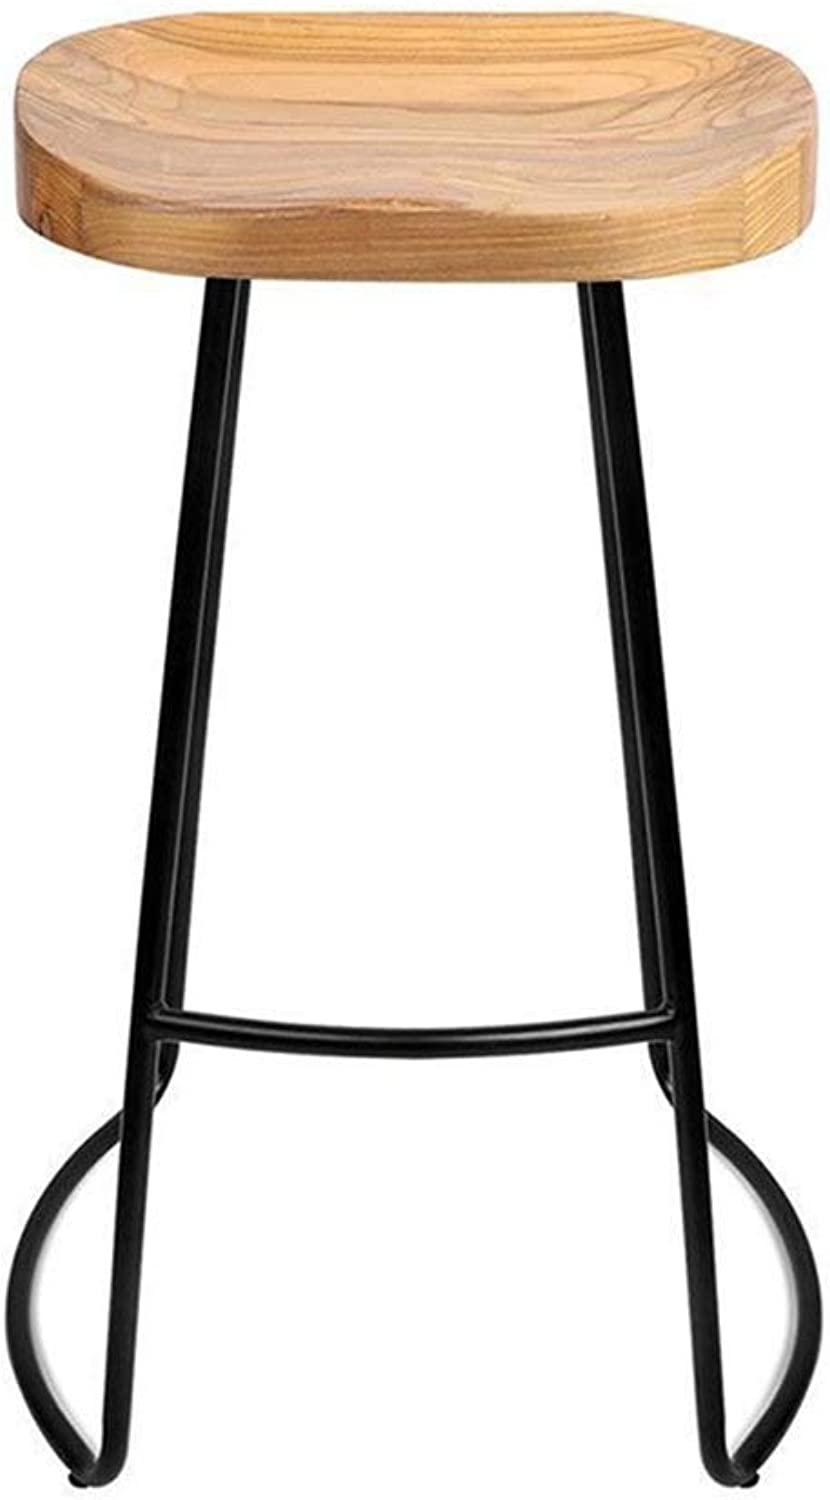 MMAXZ Bar stoolsBar Chair,Bar Stool Solid Wood Wrought Iron high Stool Retro bar Stool Dining Chair Wooden seat Metal Legs (Size   45CM, Style   Style C)